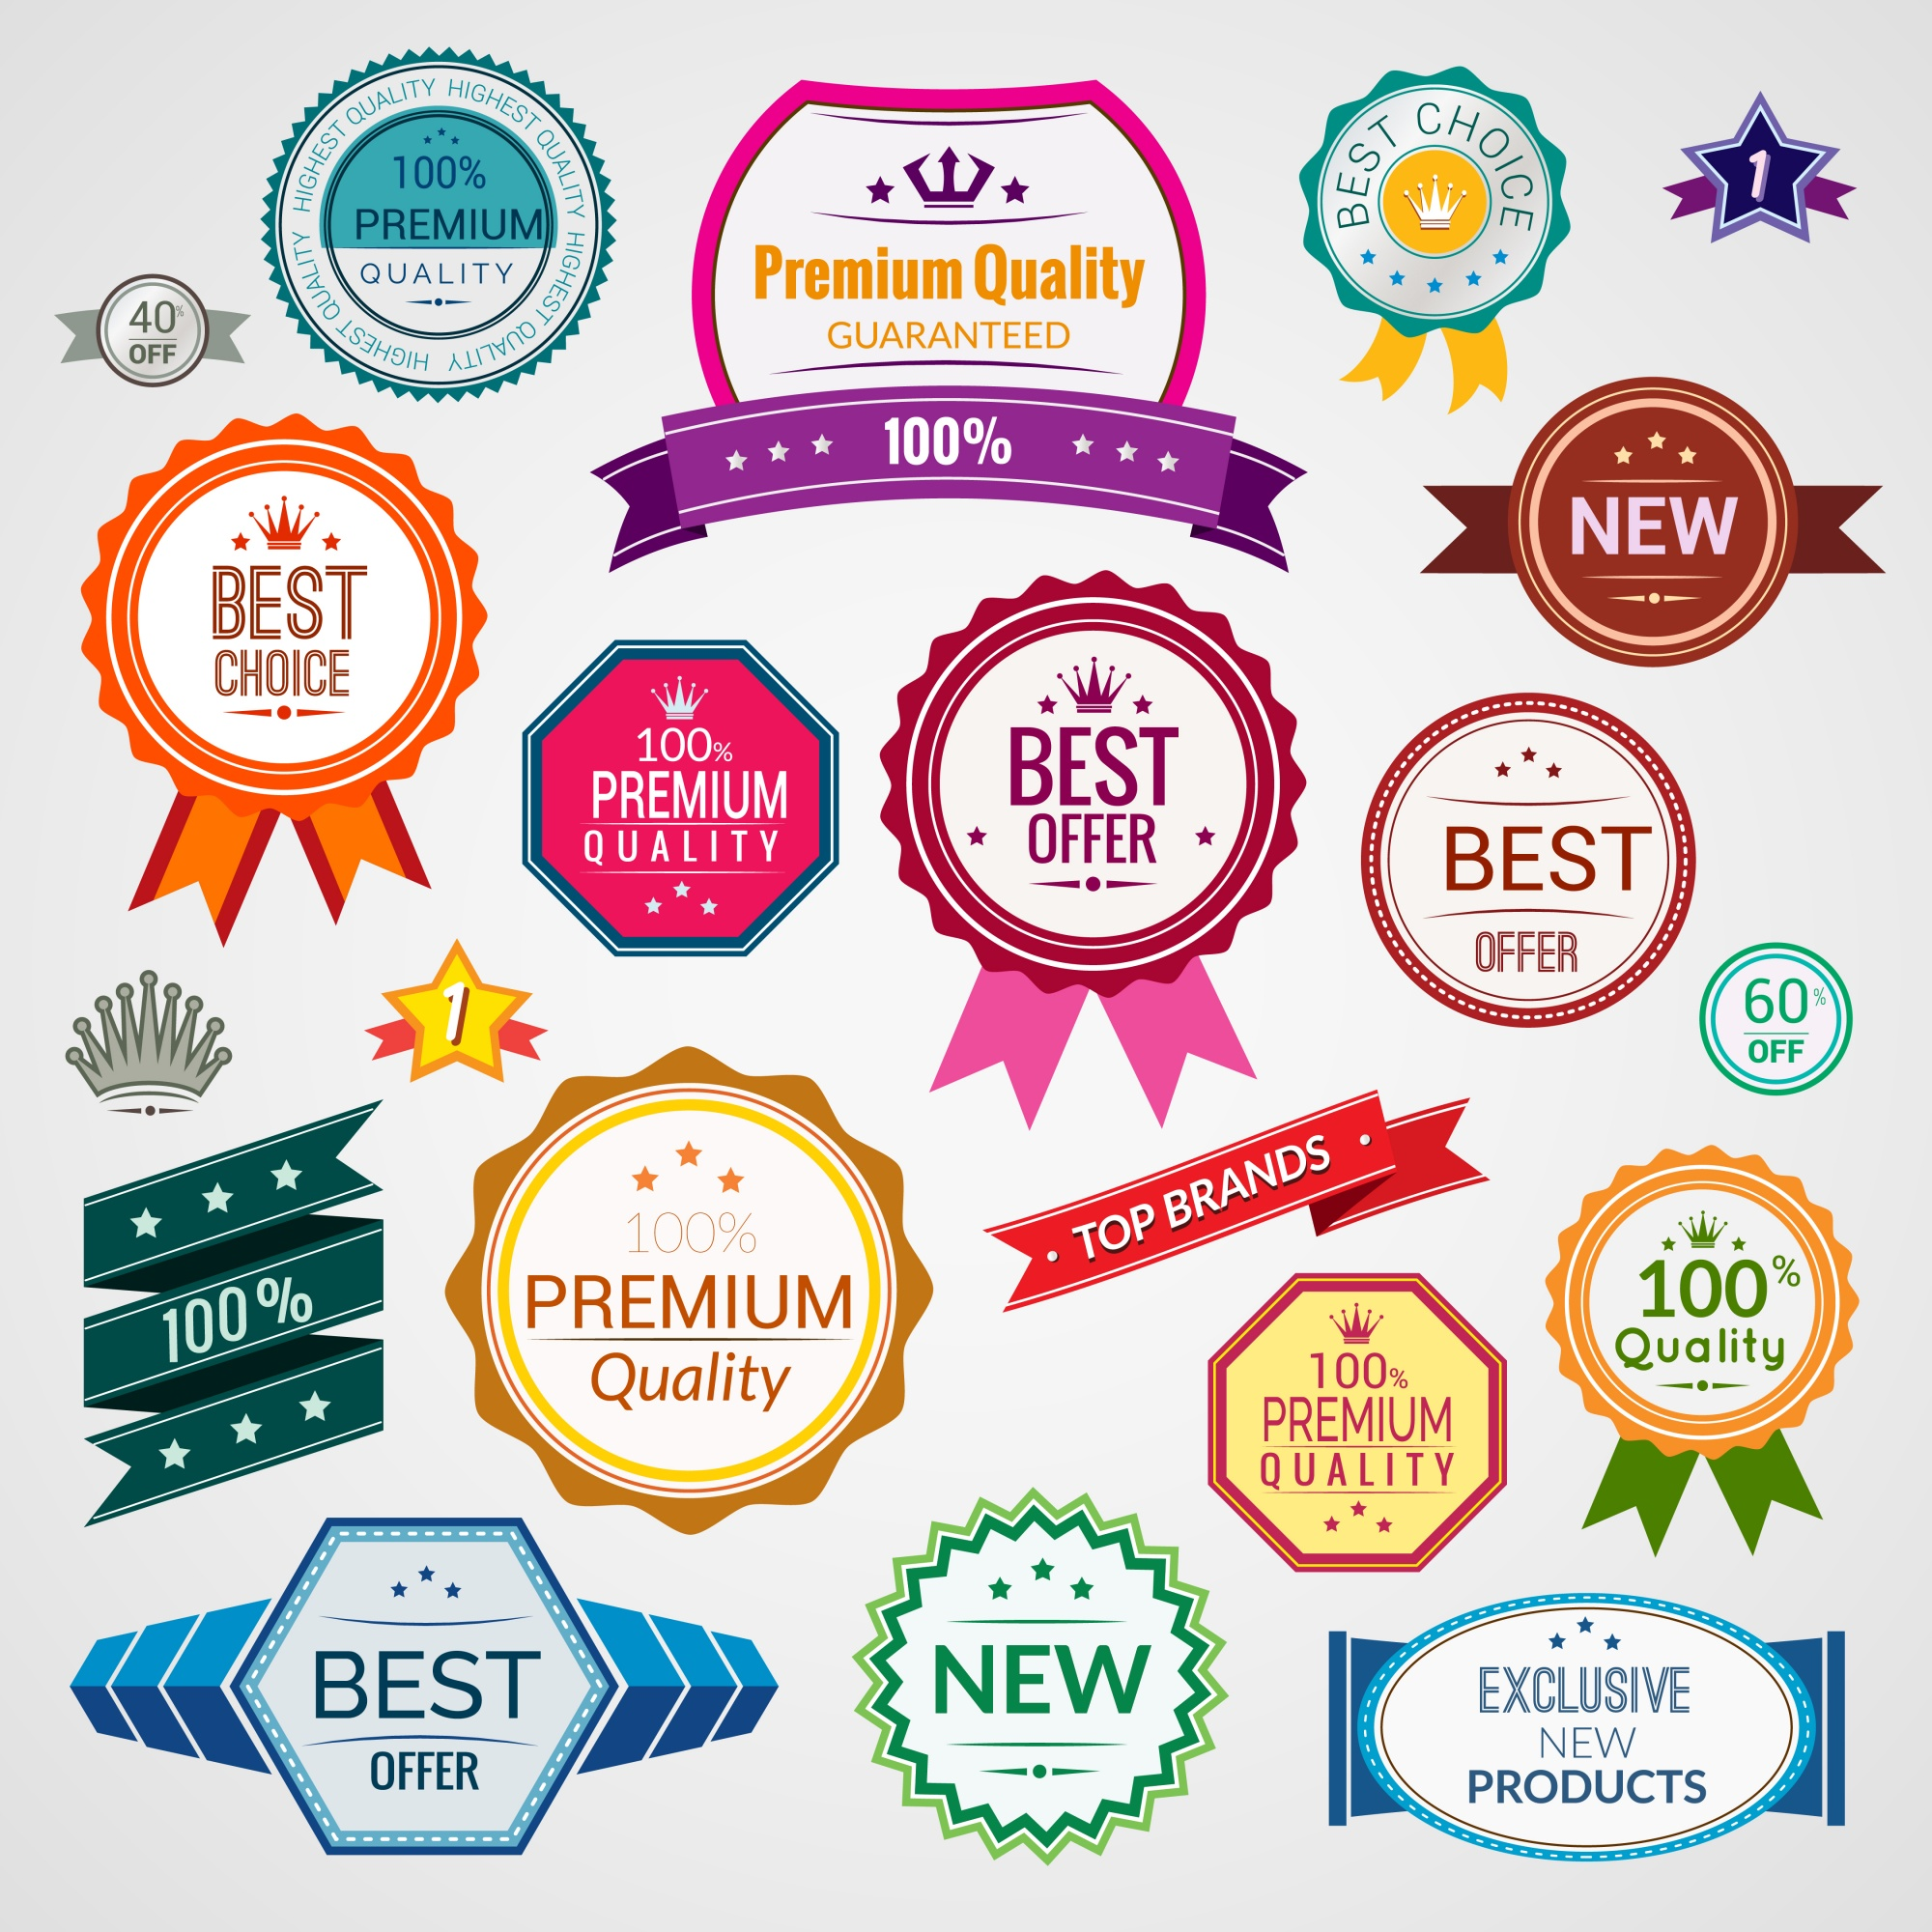 Color sale premium quality best choice exclusive labels set isolated vector illustration